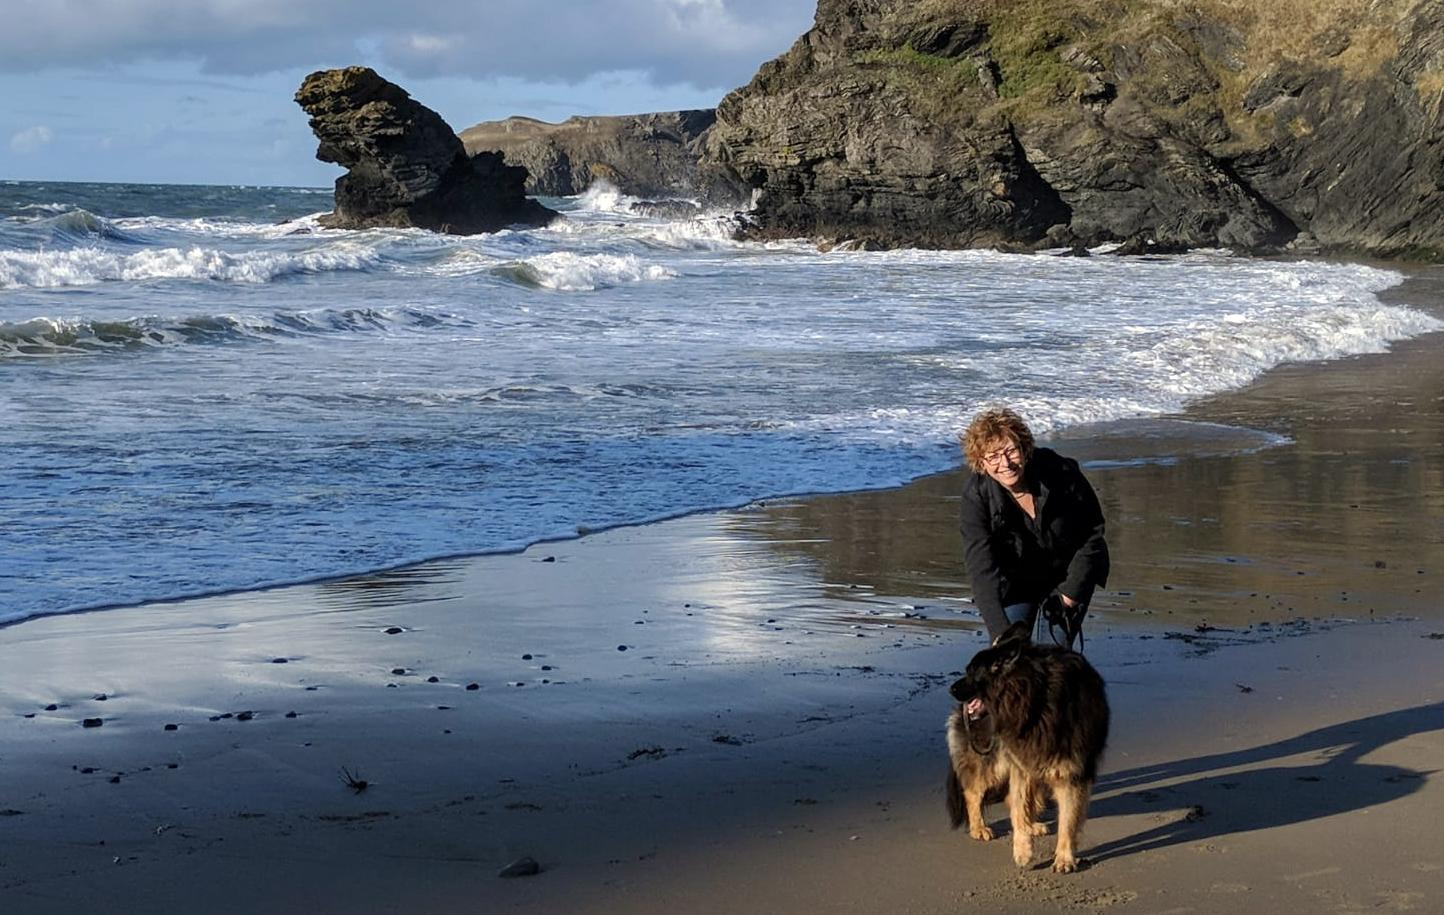 Founder Cath with her dog on the beach